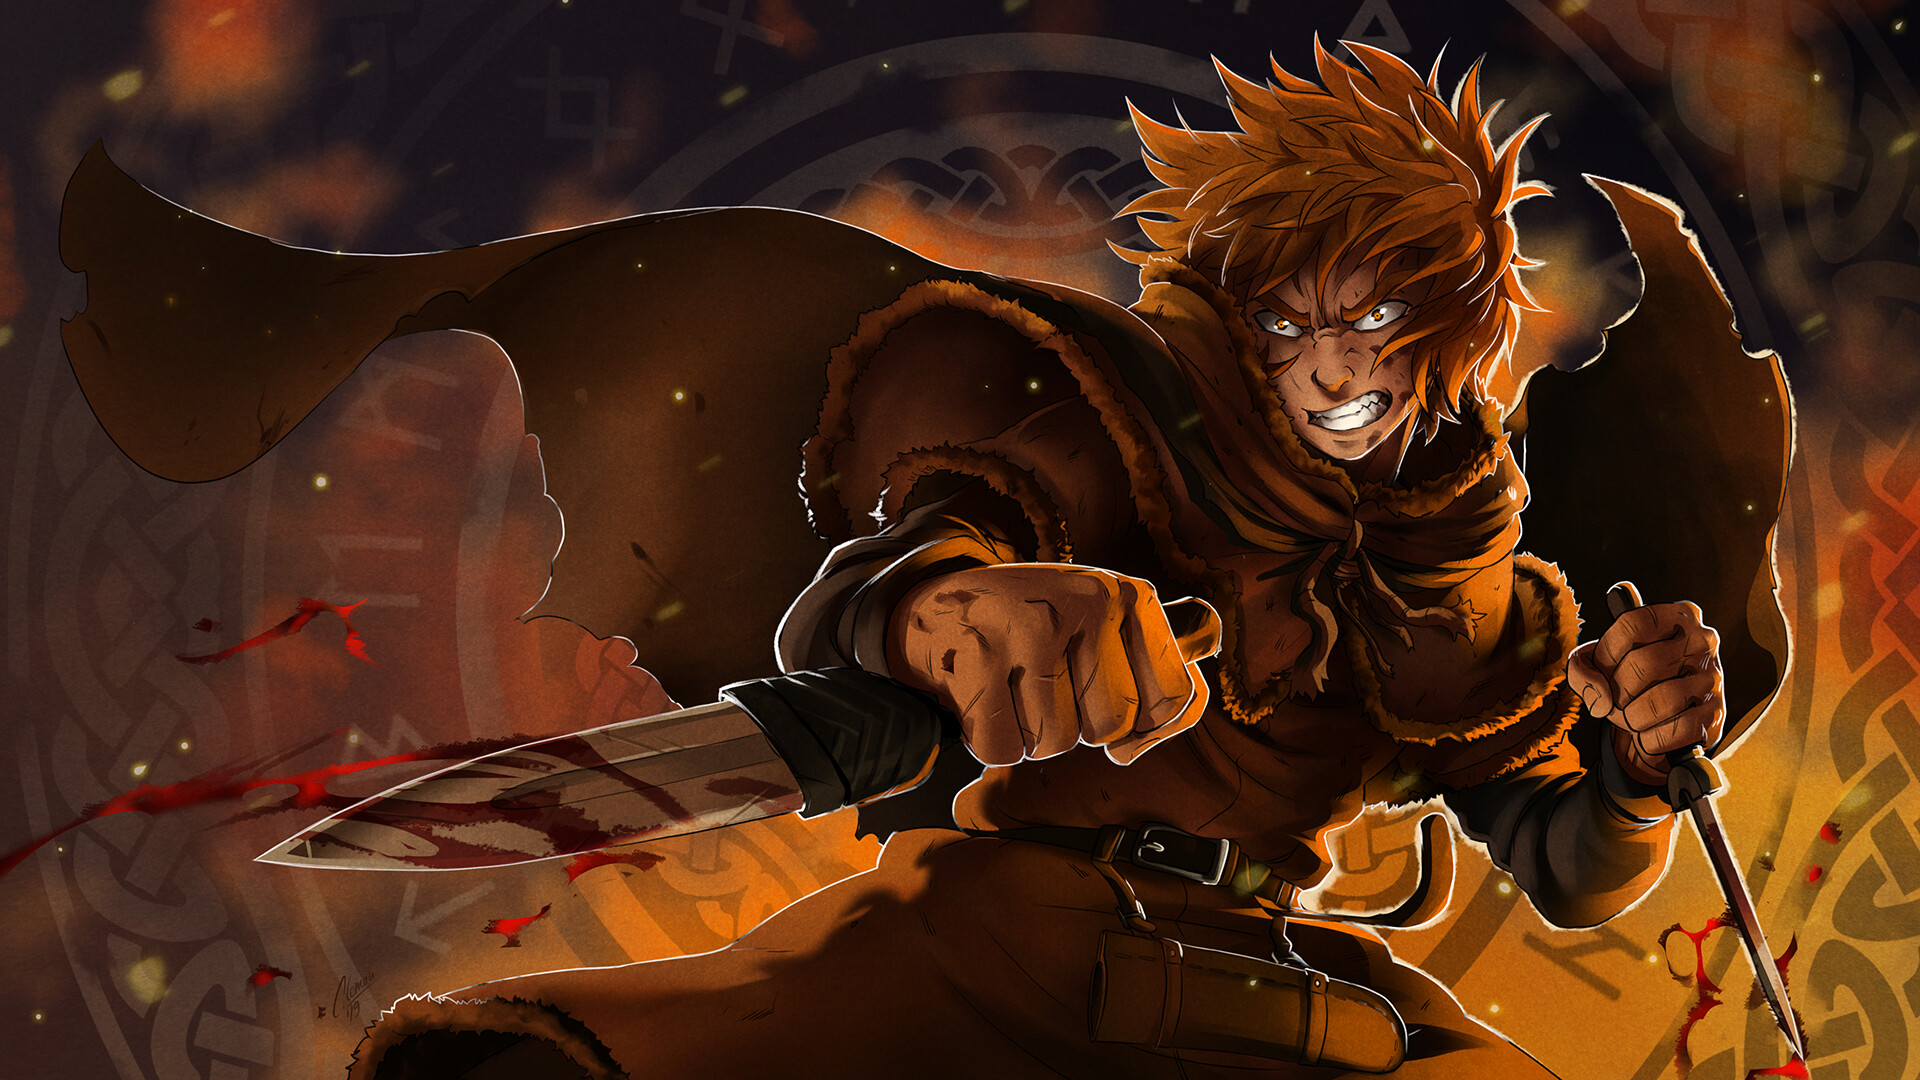 Vinland Saga Hd Wallpaper Background Image 1920x1080 Id 1031843 Wallpaper Abyss